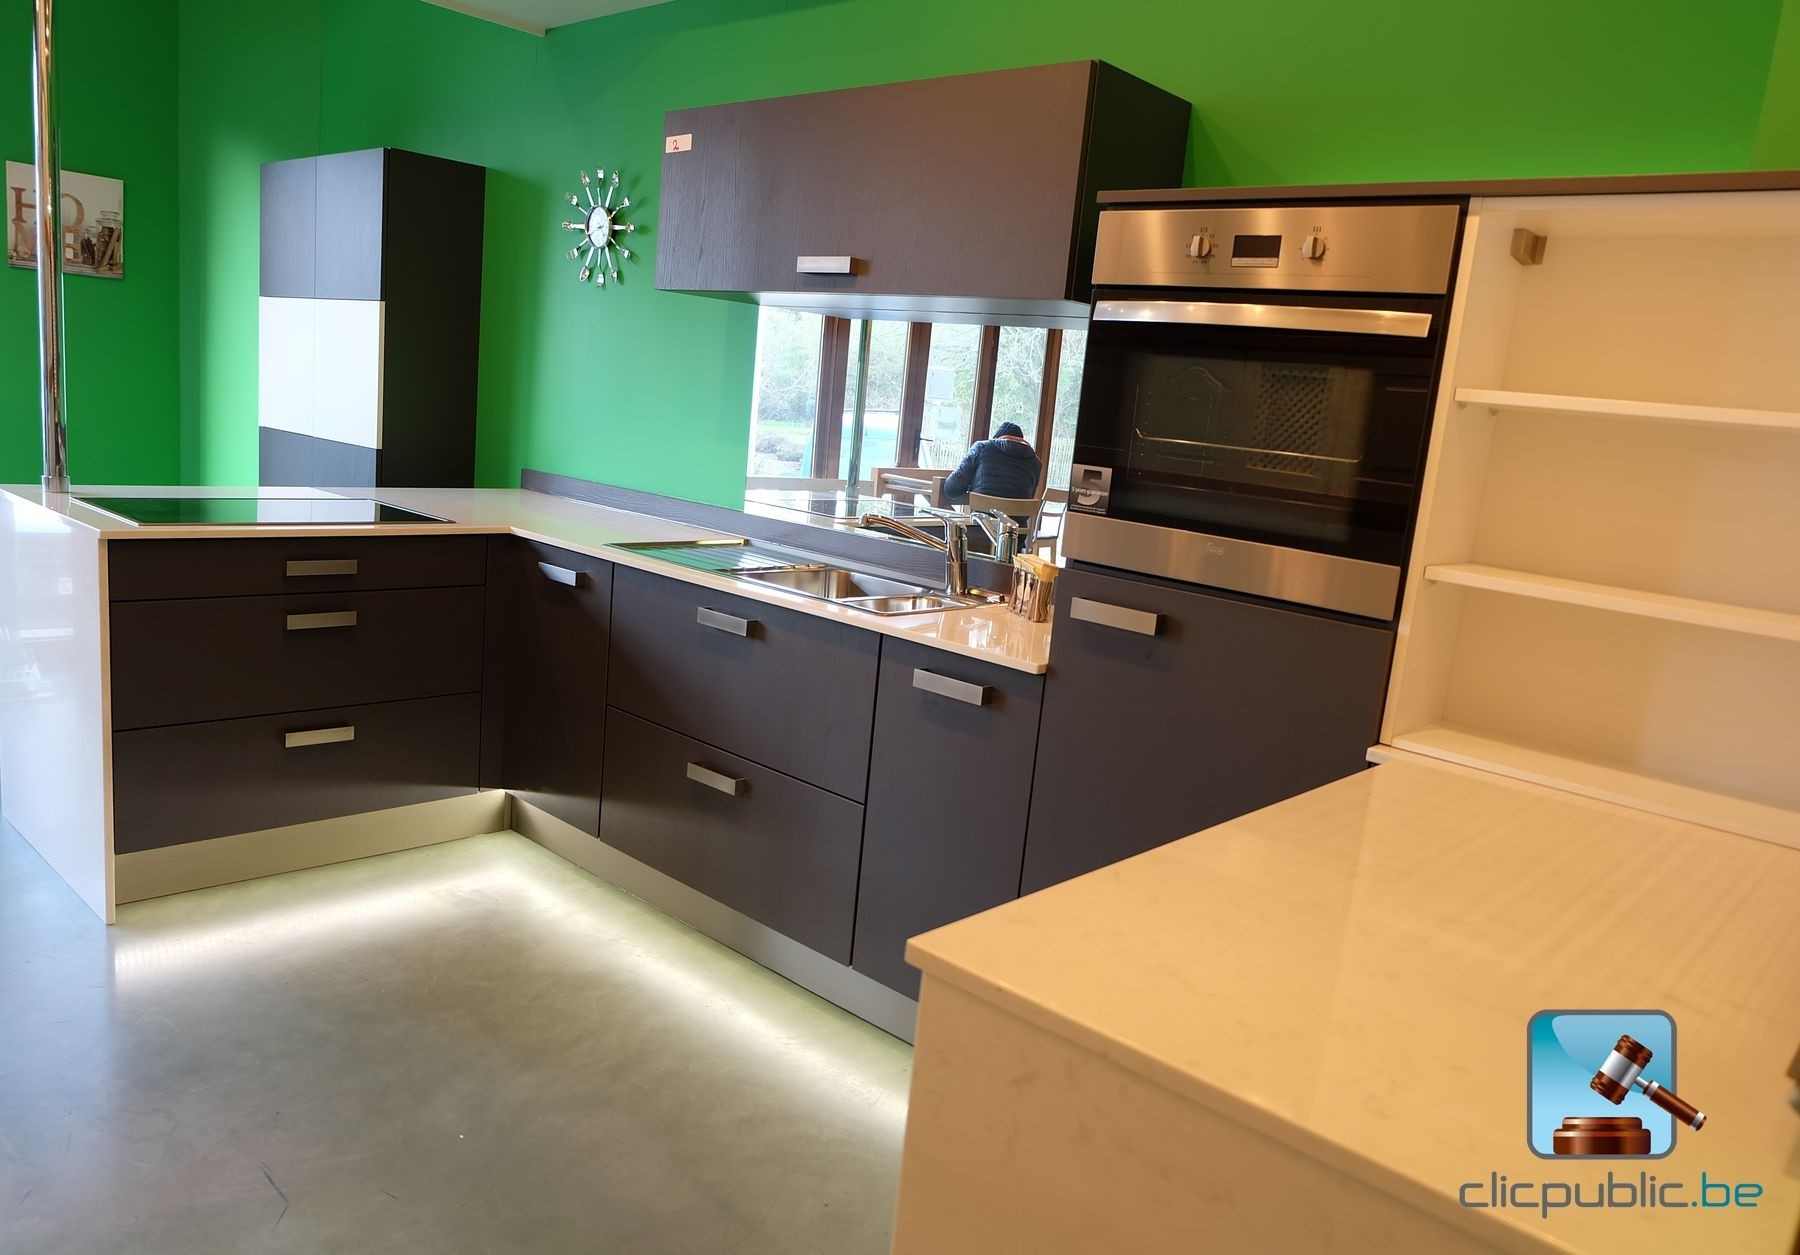 Cuisine quip e contemporaine decolegno anthracite en l for Cuisine equipee contemporaine